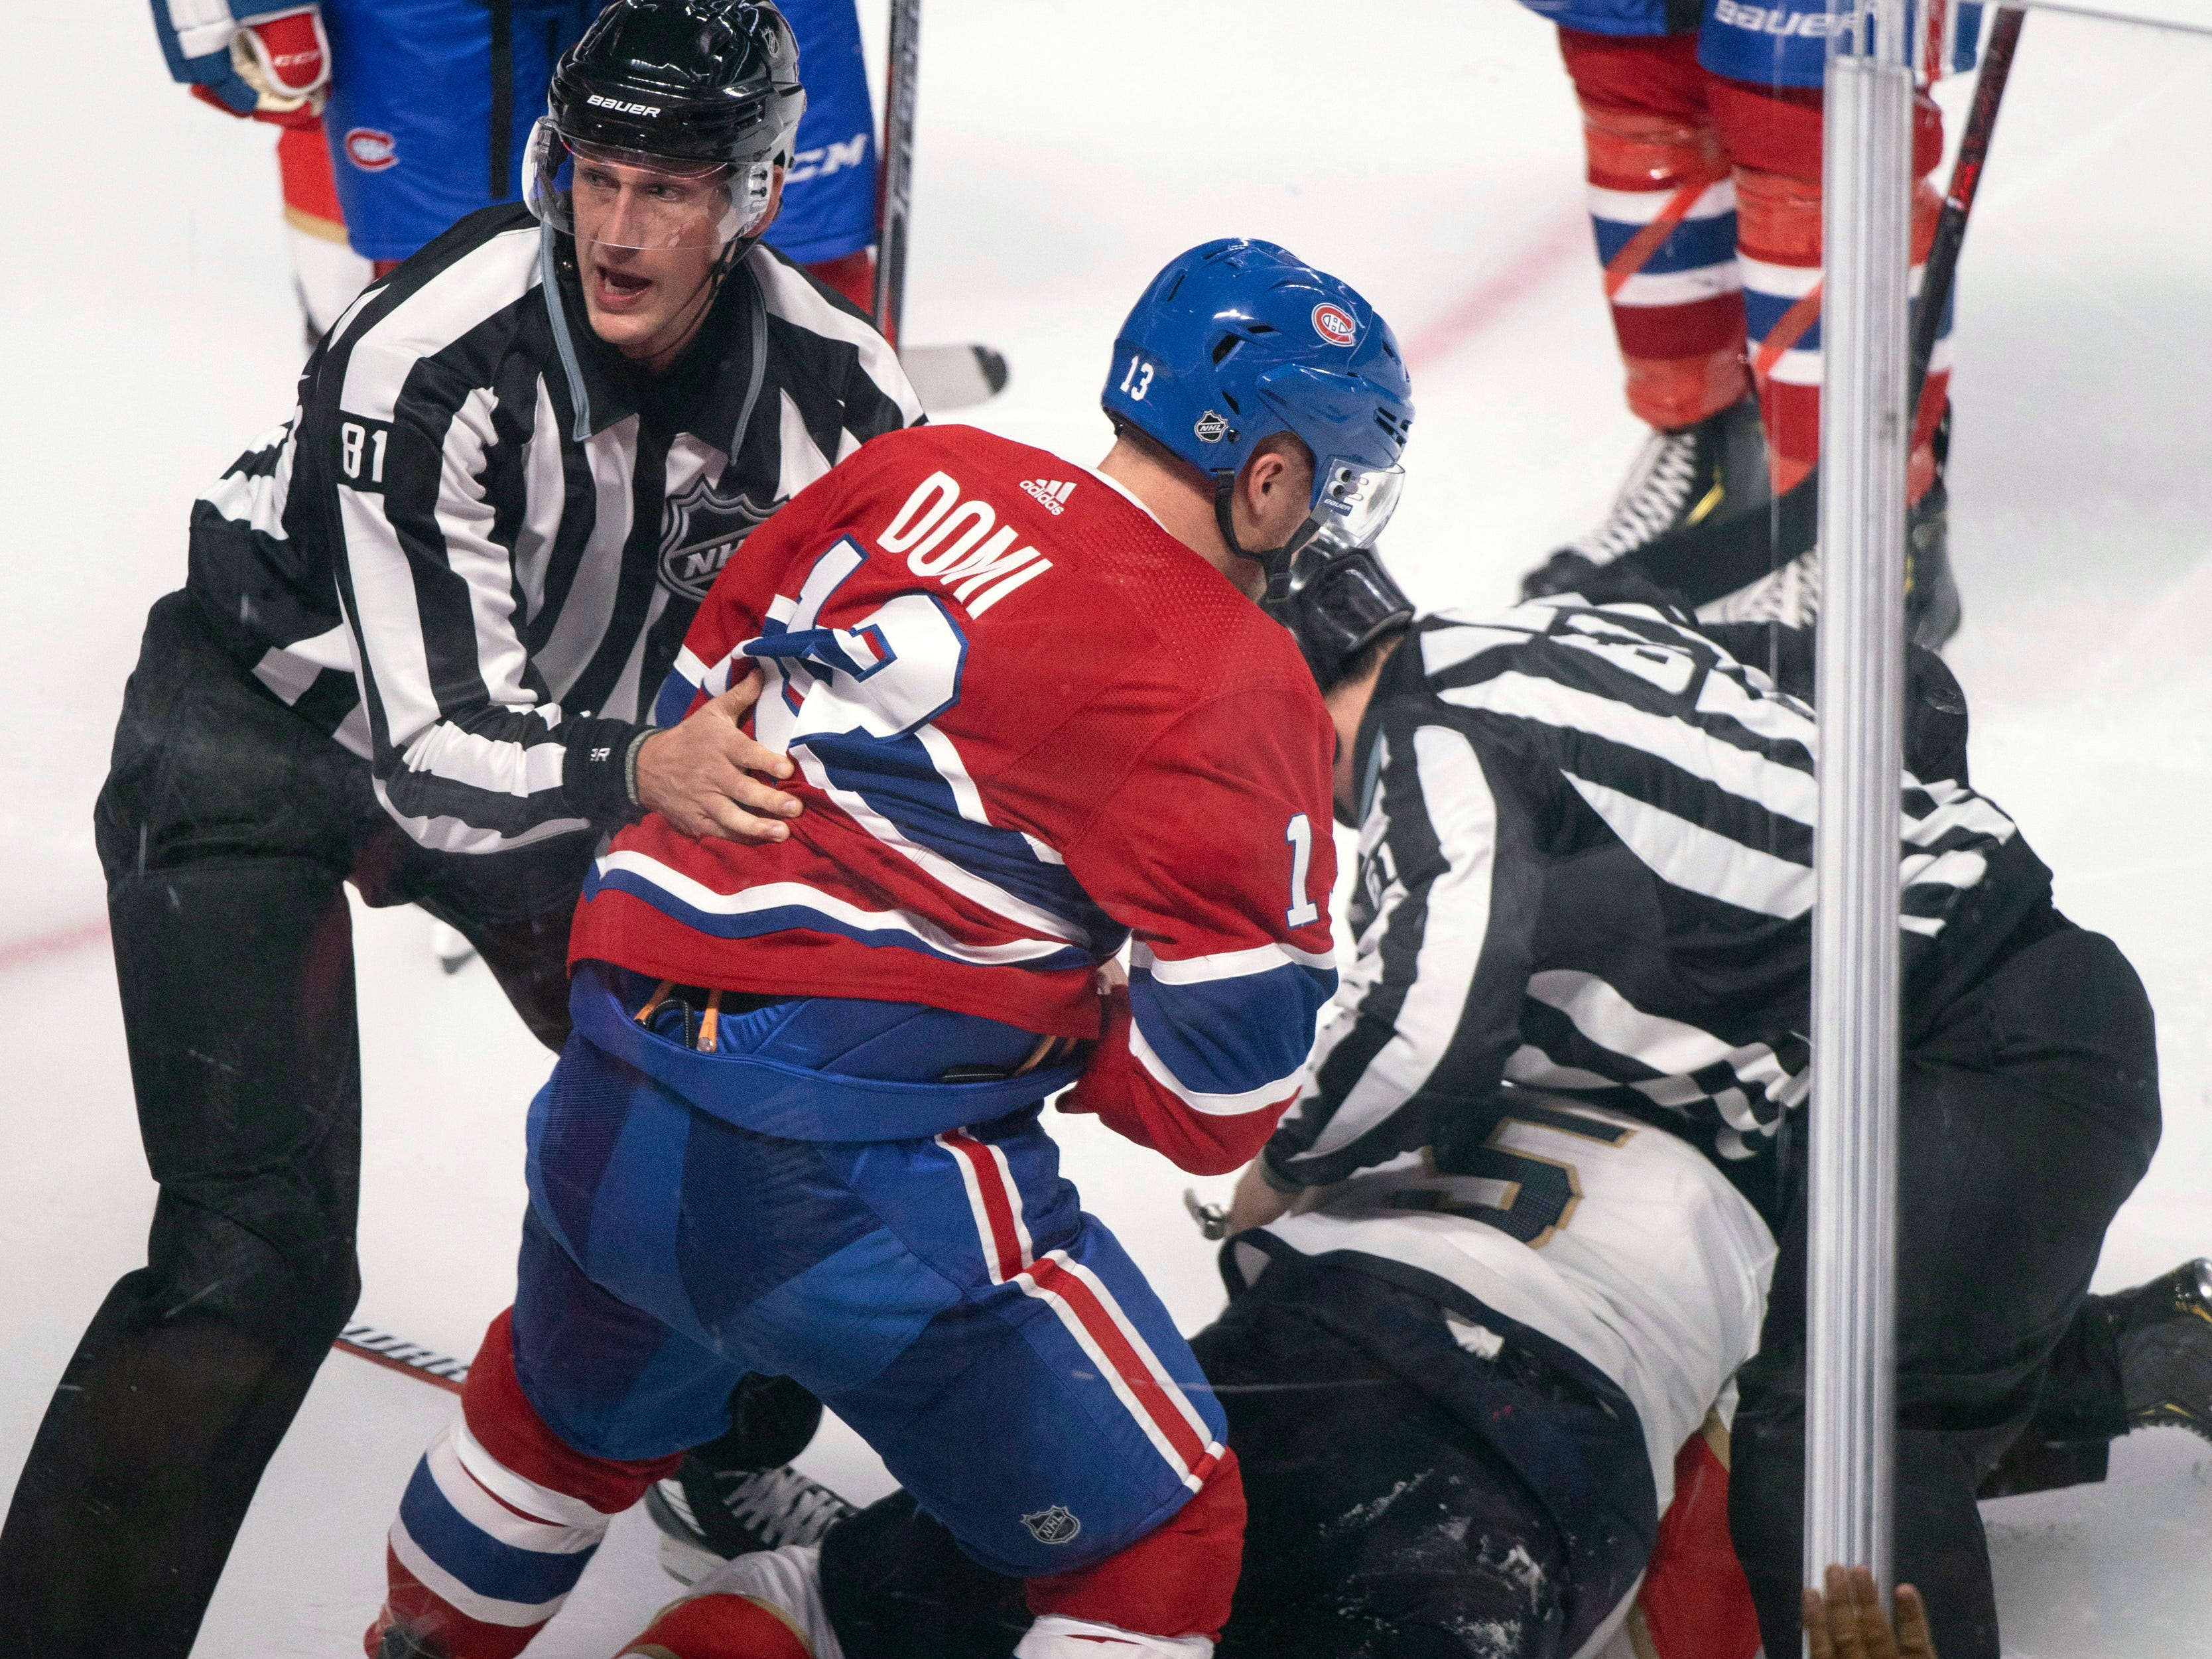 Sept. 19: Montreal Canadiens forward Max Domi was suspended for five preseason games for roughing Florida Panthers defenseman Aaron Ekblad.